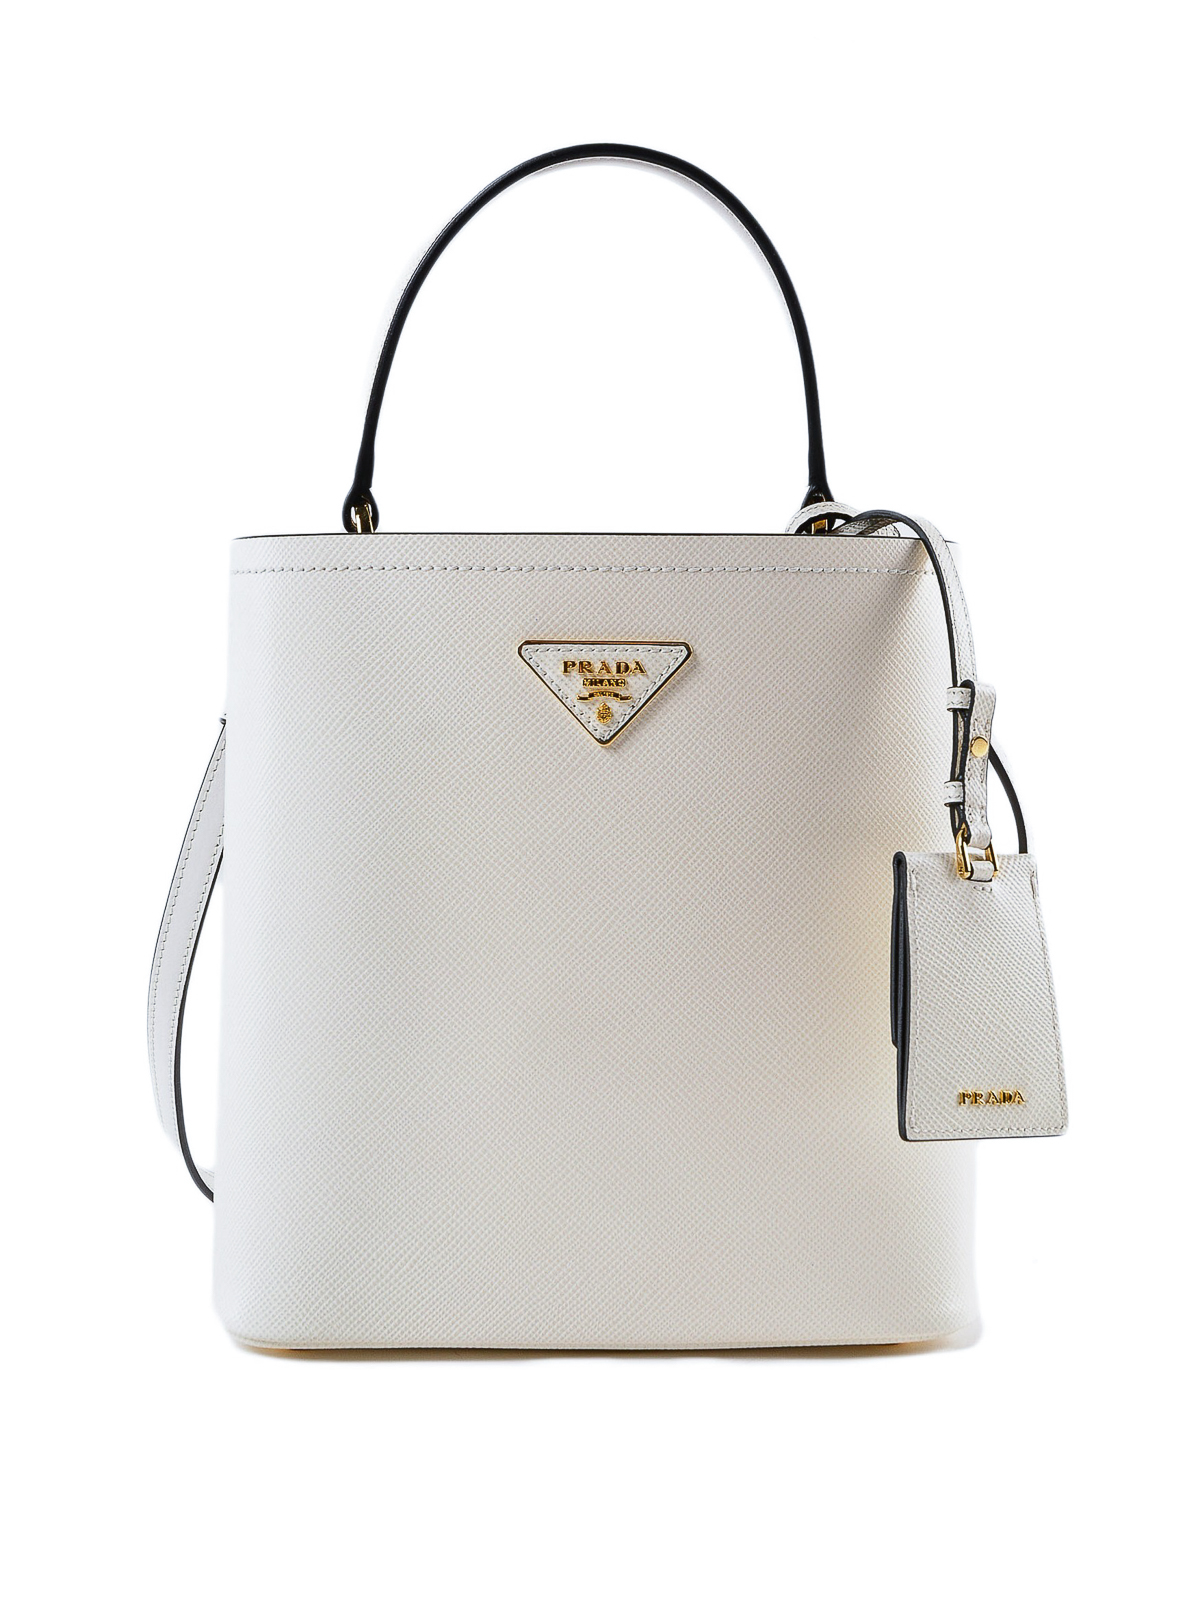 Prada White Saffiano Leather Double Bucket Bag Bucket Bags 1ba2122erxg3z